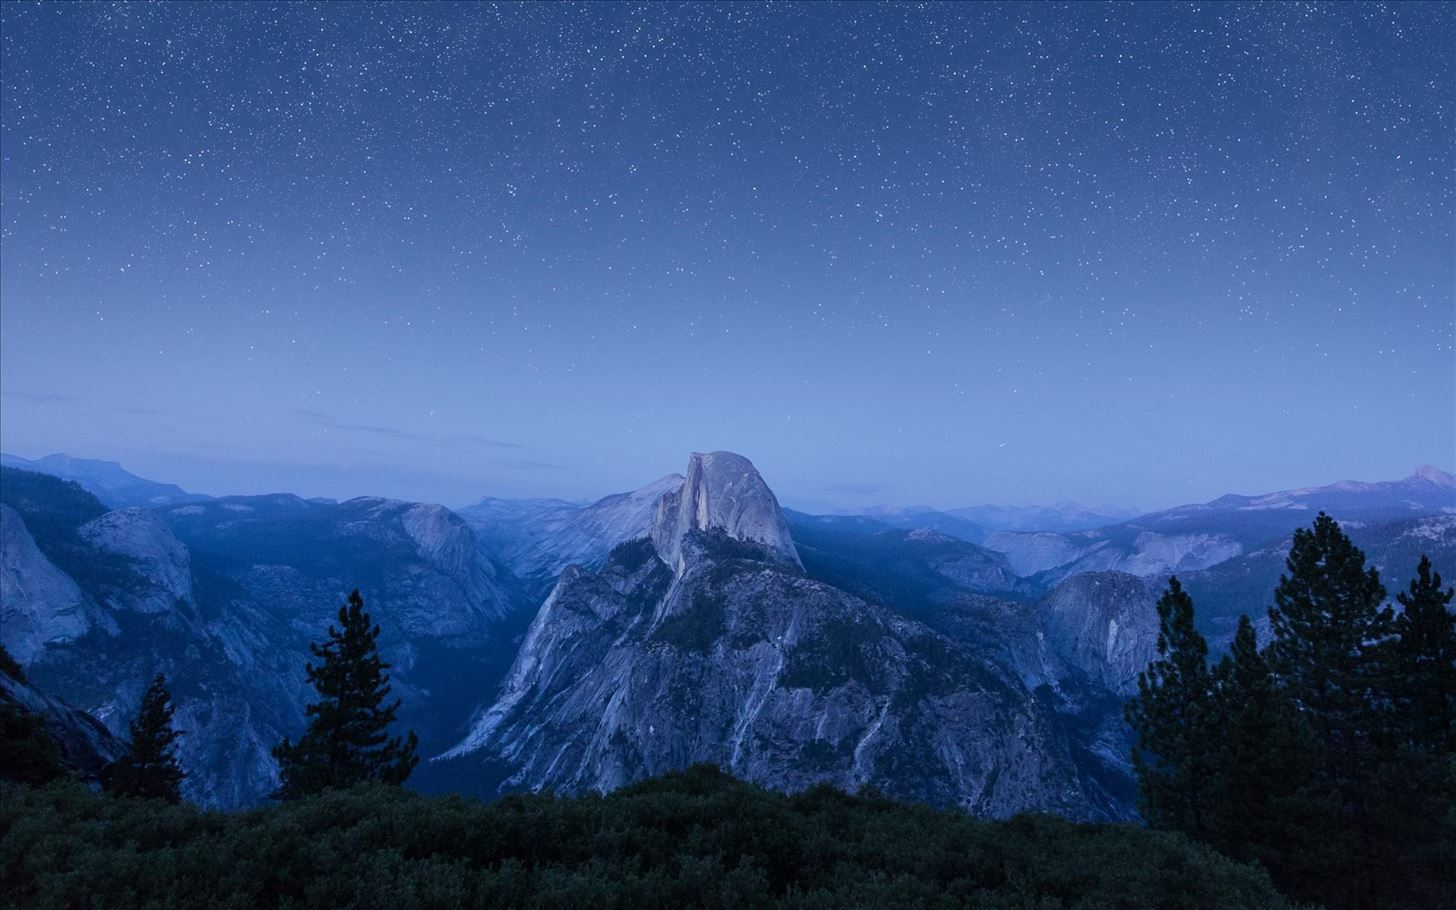 Get the Beautiful New El Capitan Wallpaper for Your Mac & iPhone